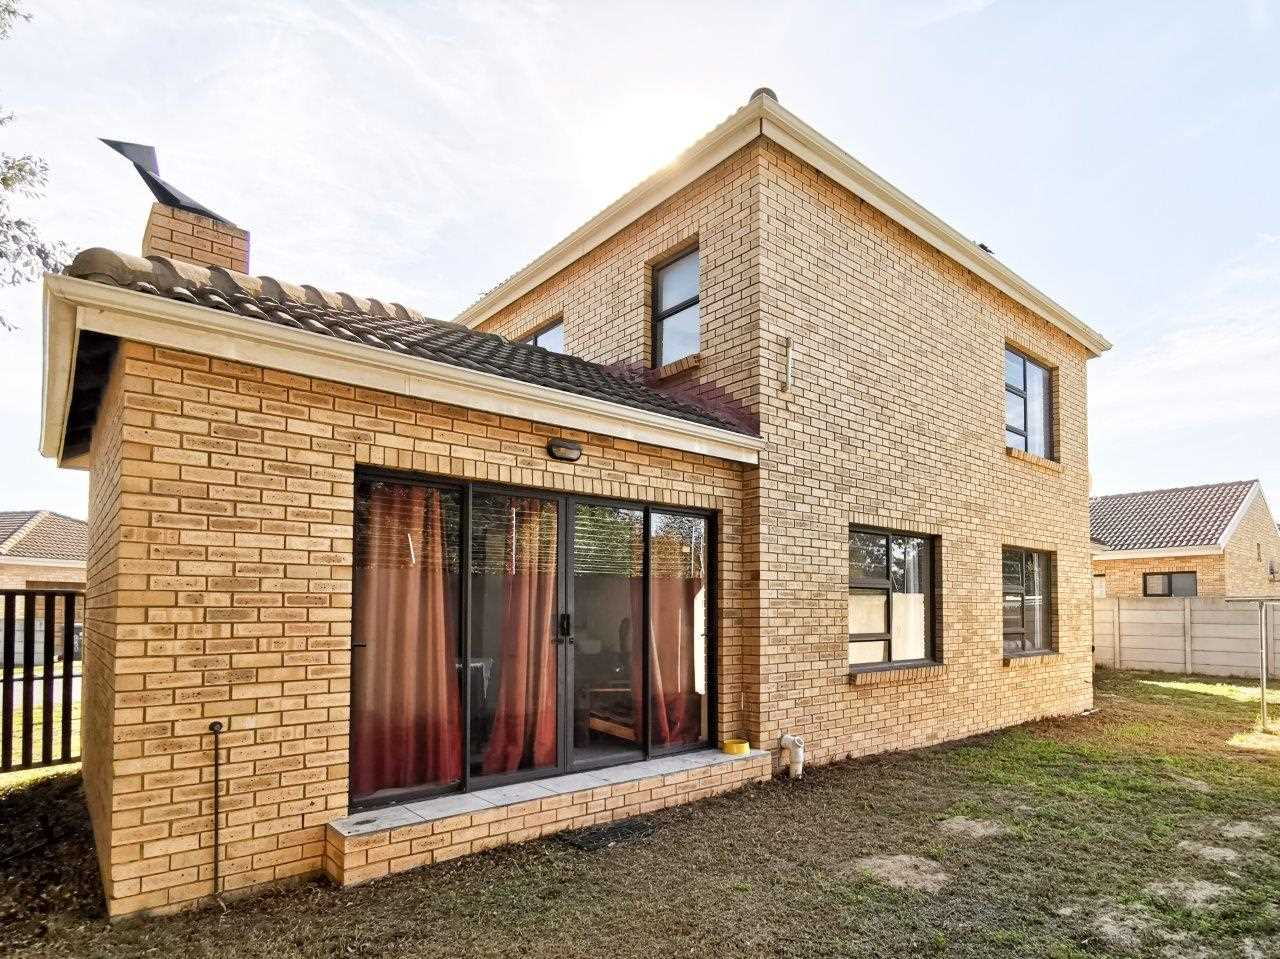 3 Bedroom home in a sought after complex